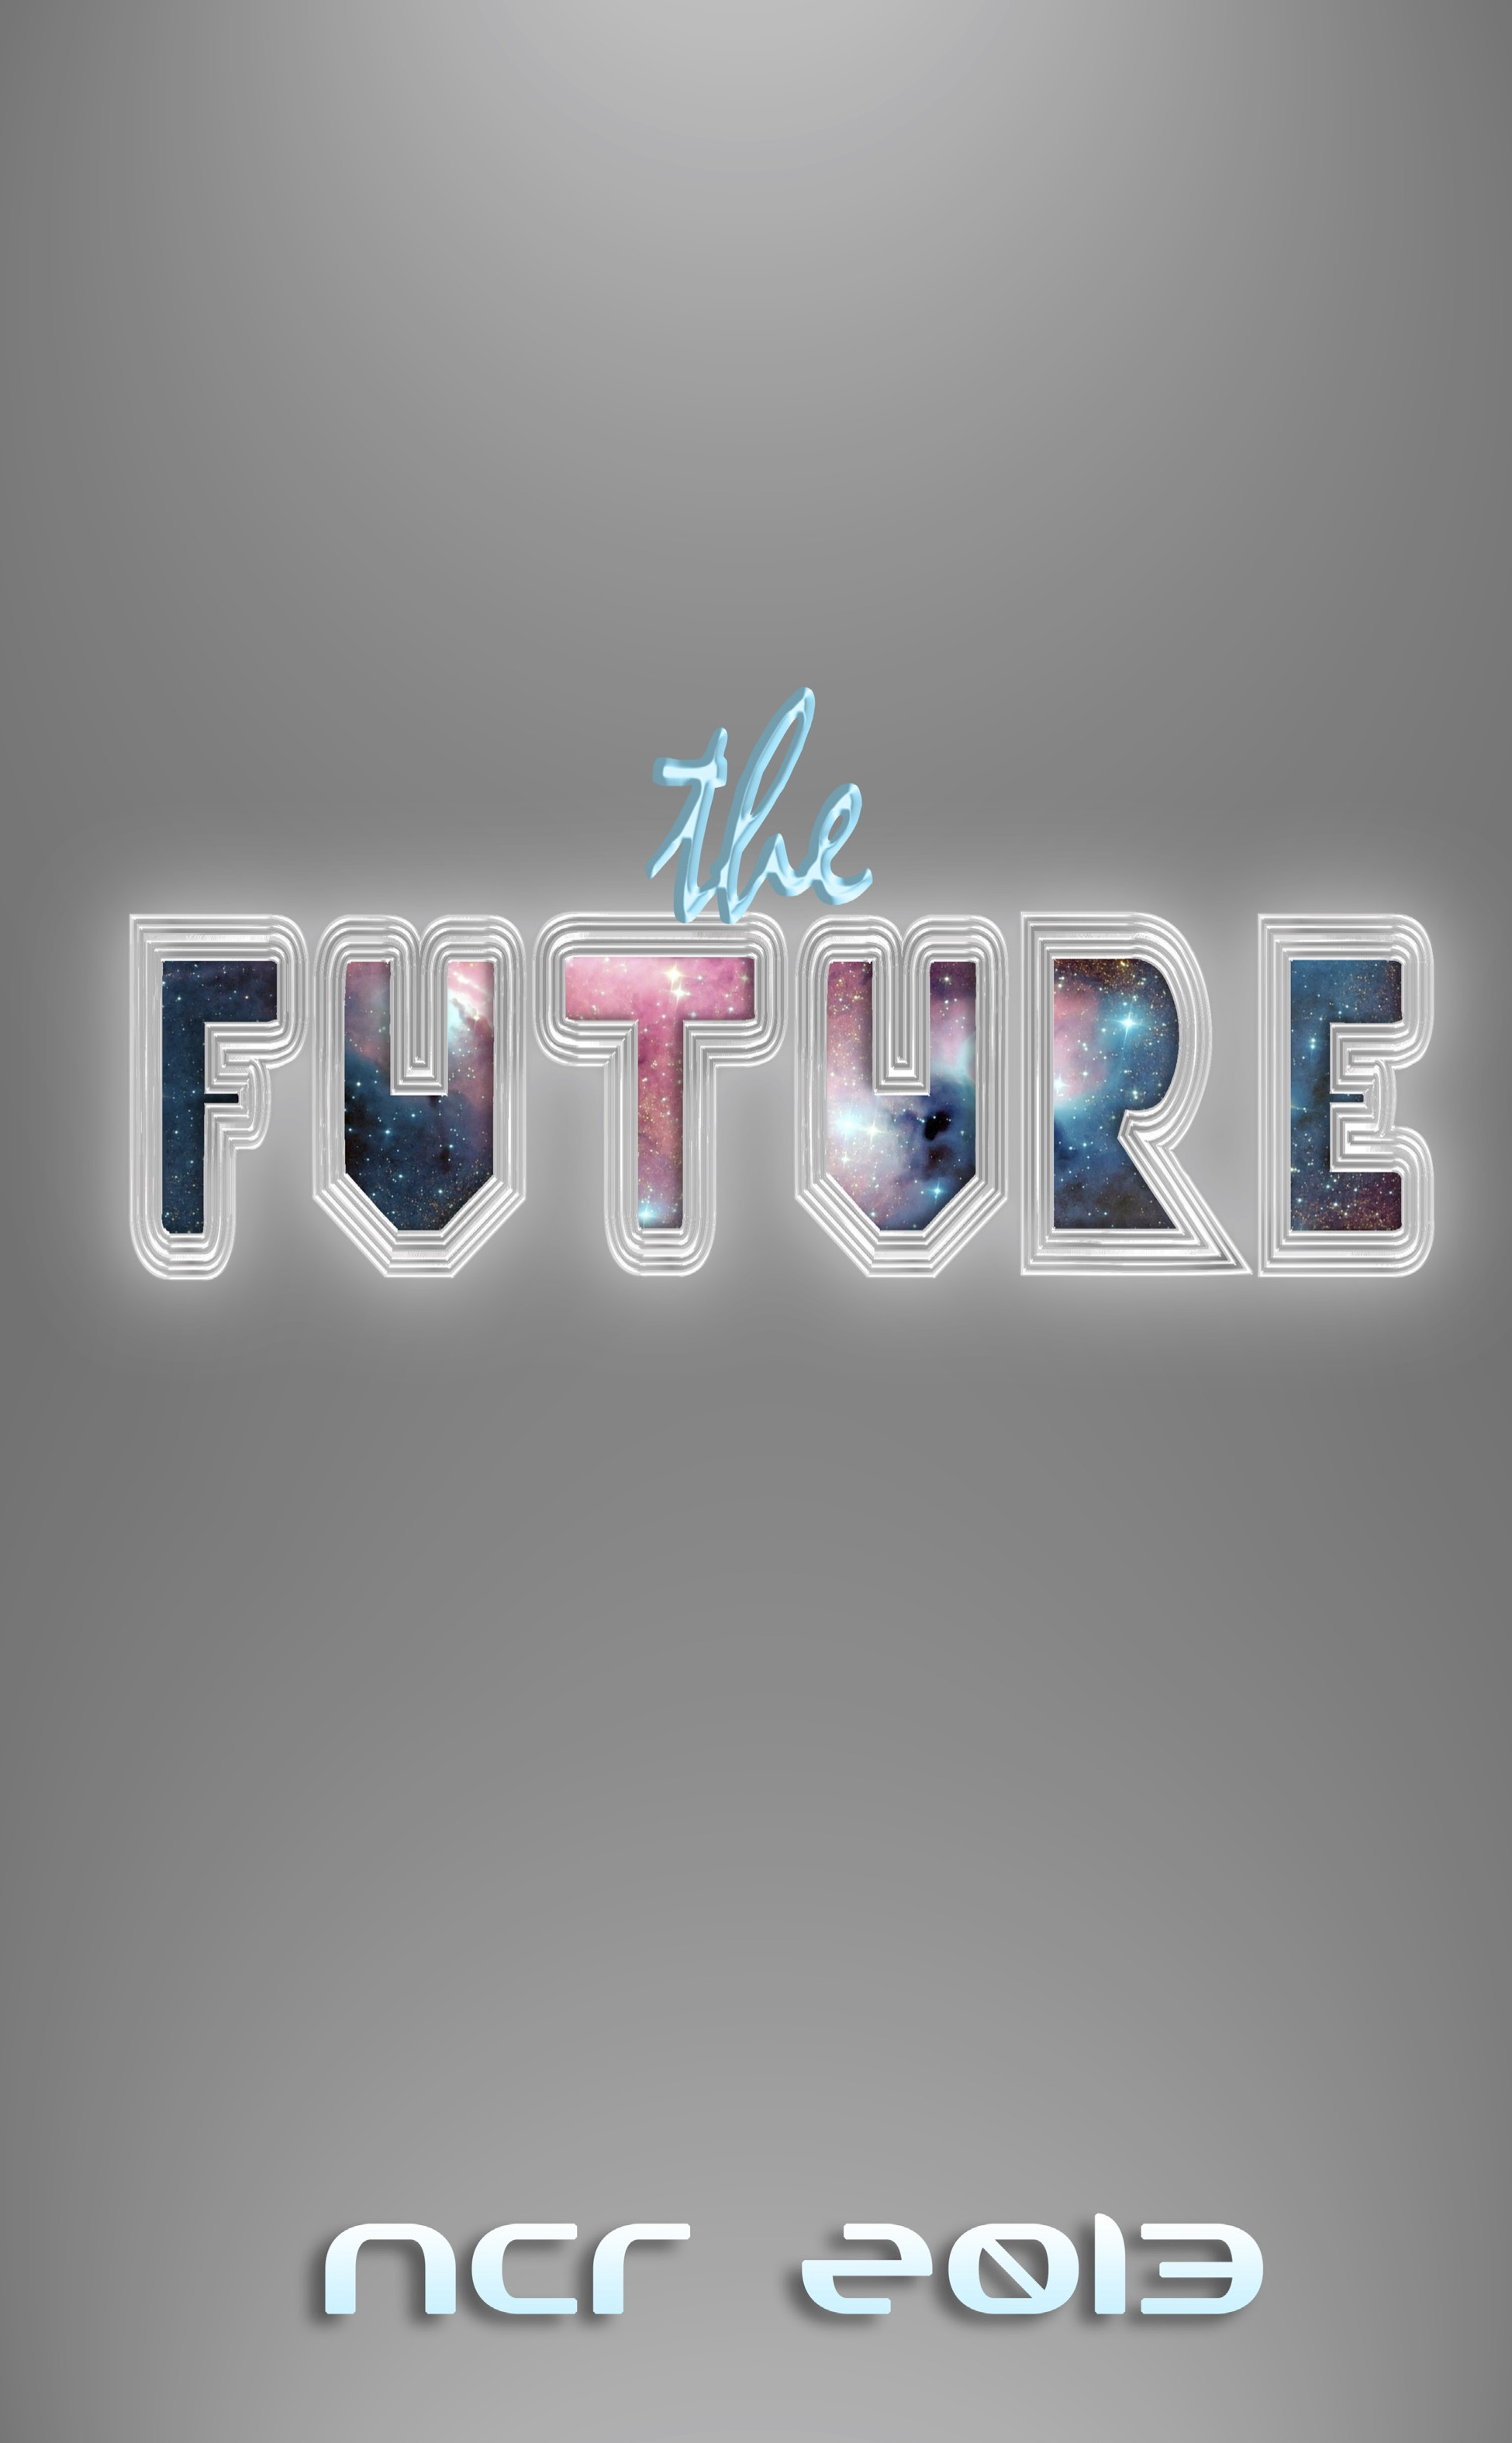 Cover of The New College Review, 2013 issue featuring the text The Future